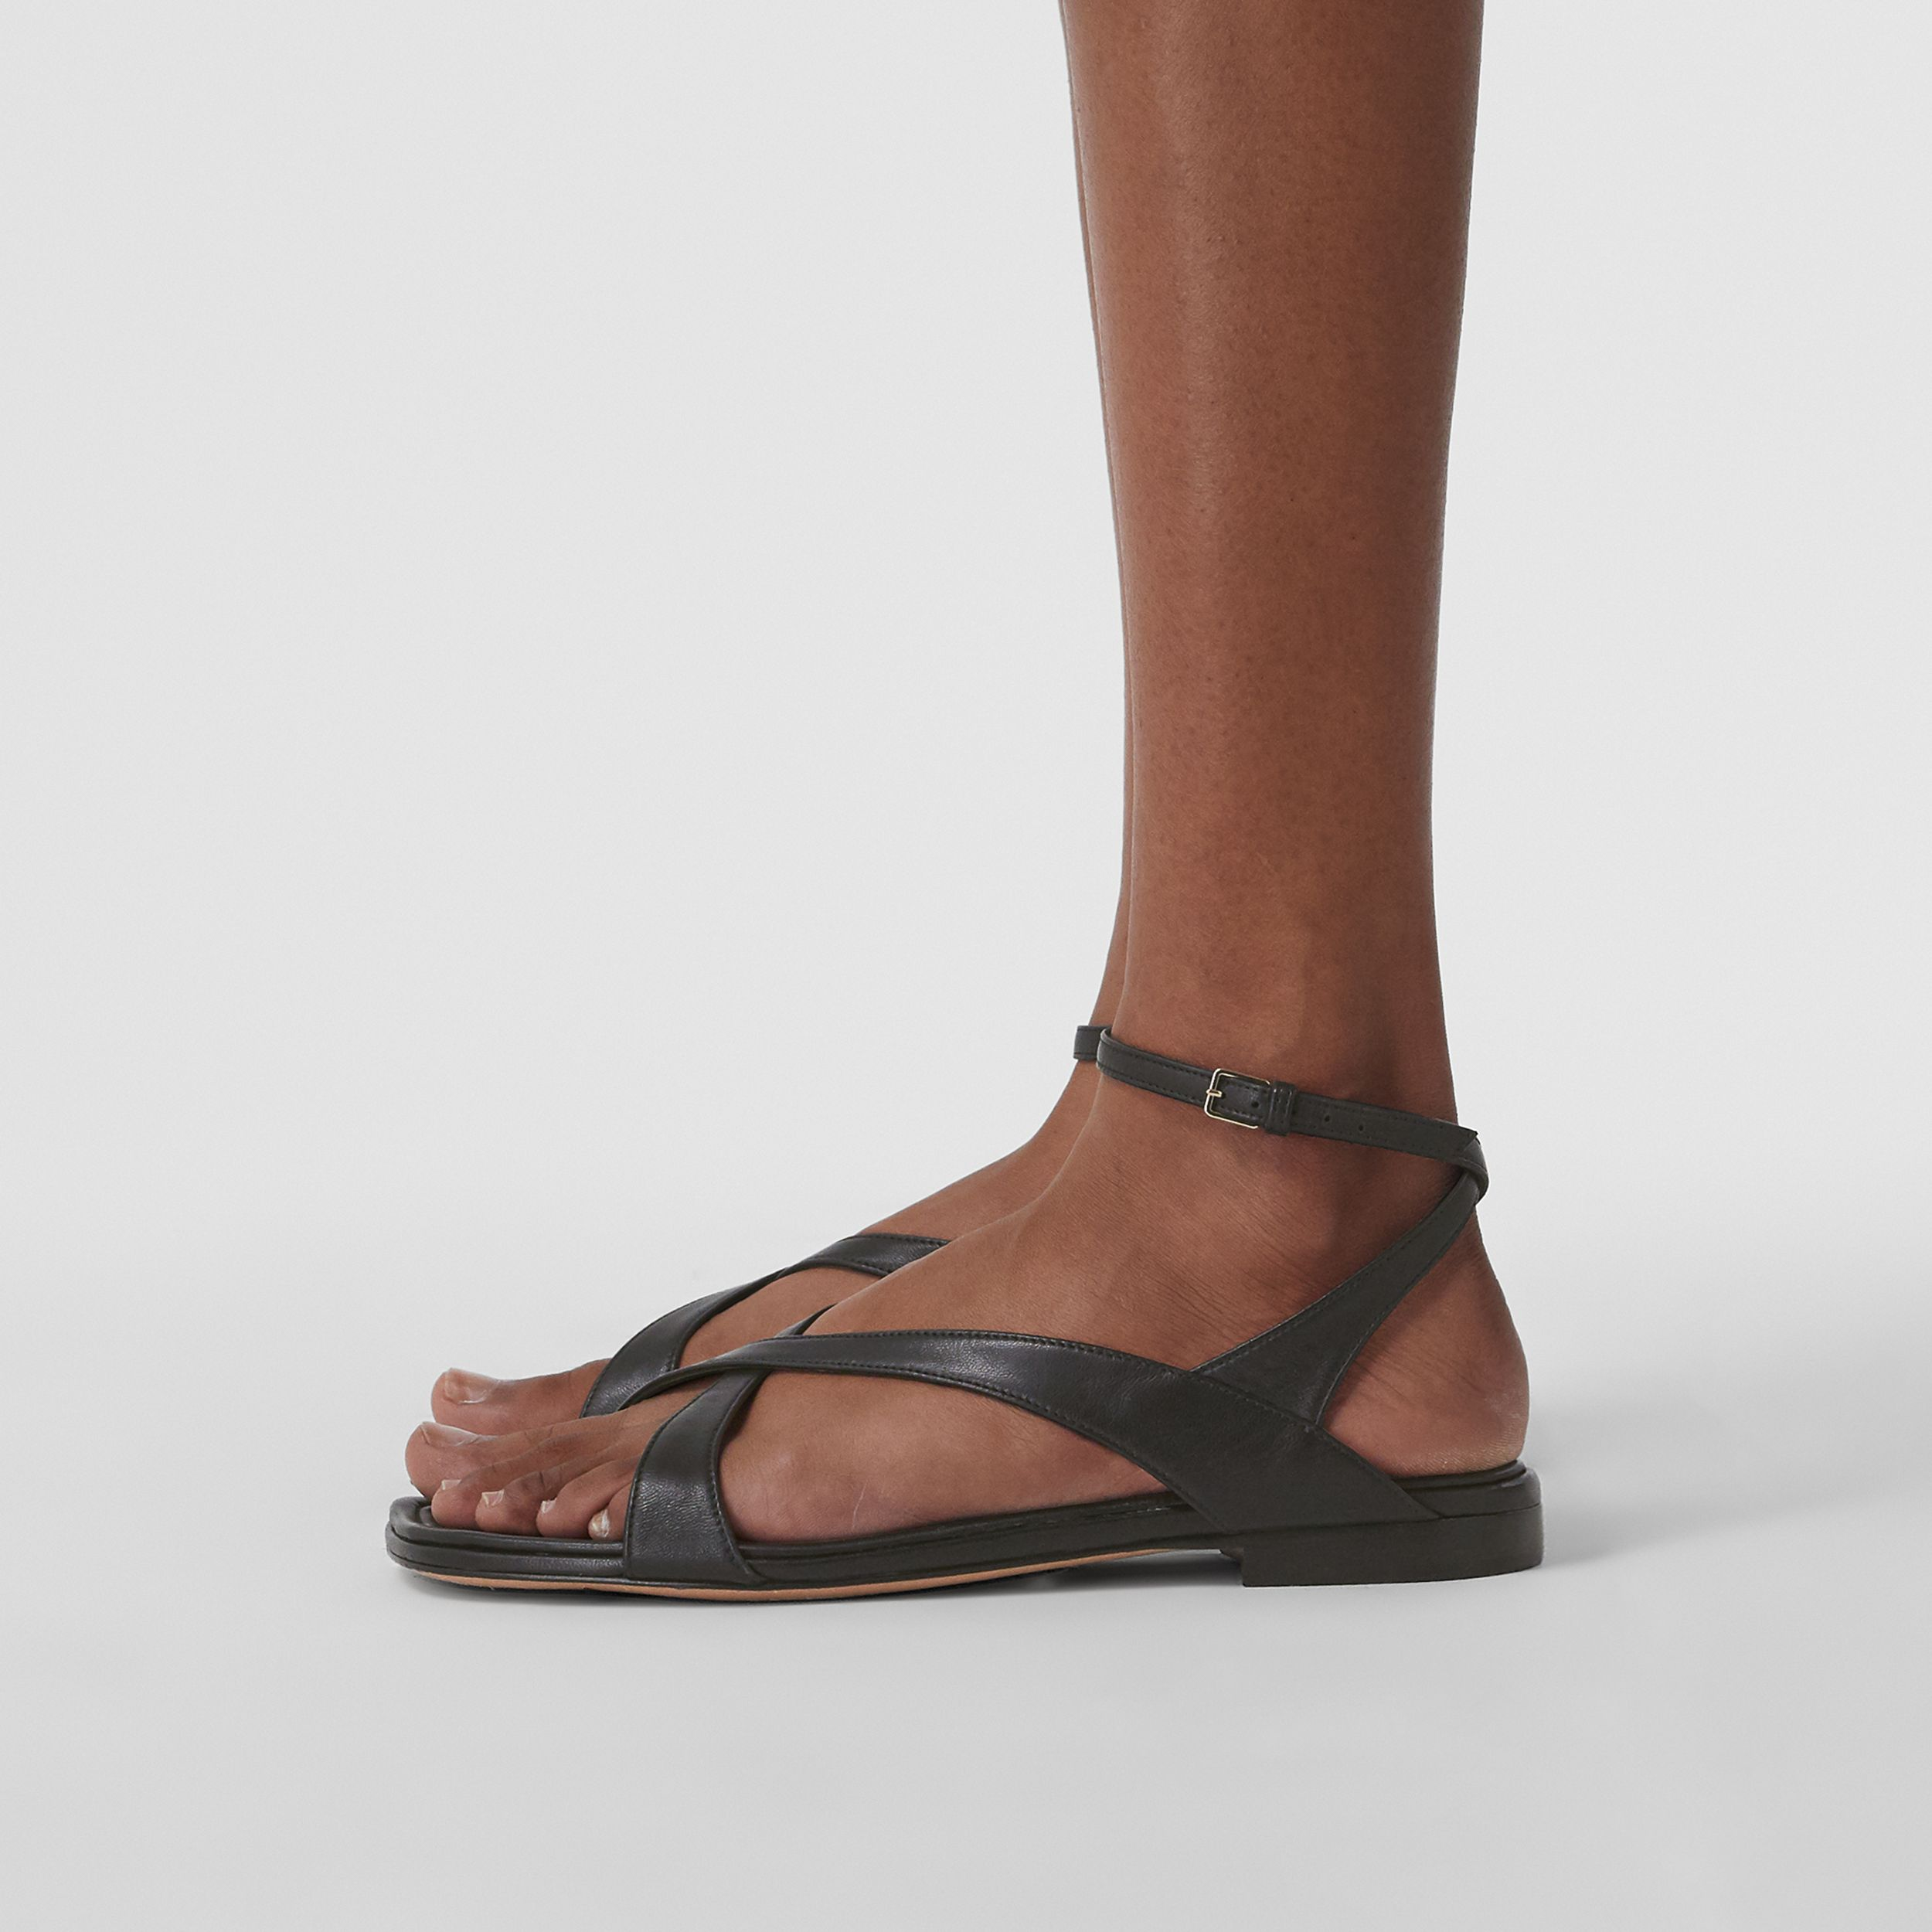 Lambskin Wraparound Sandals in Black - Women | Burberry - 3